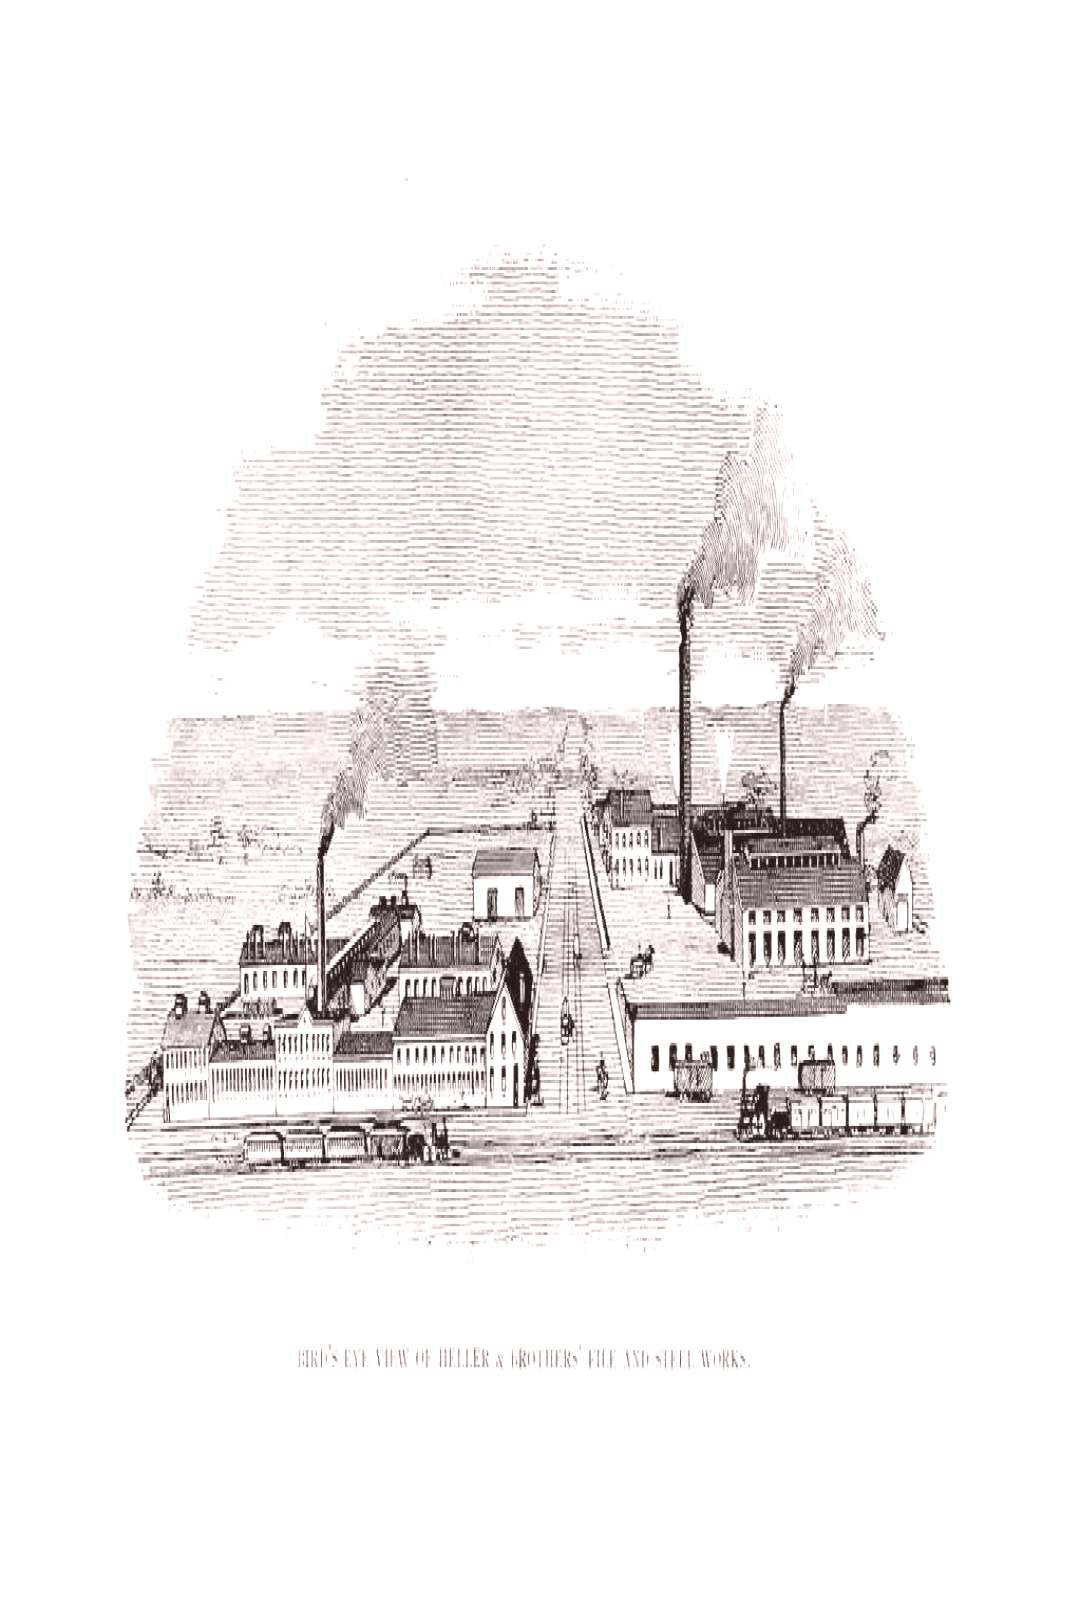 Newark Engraving Illustration Retro Old Image - Stock Photo ,